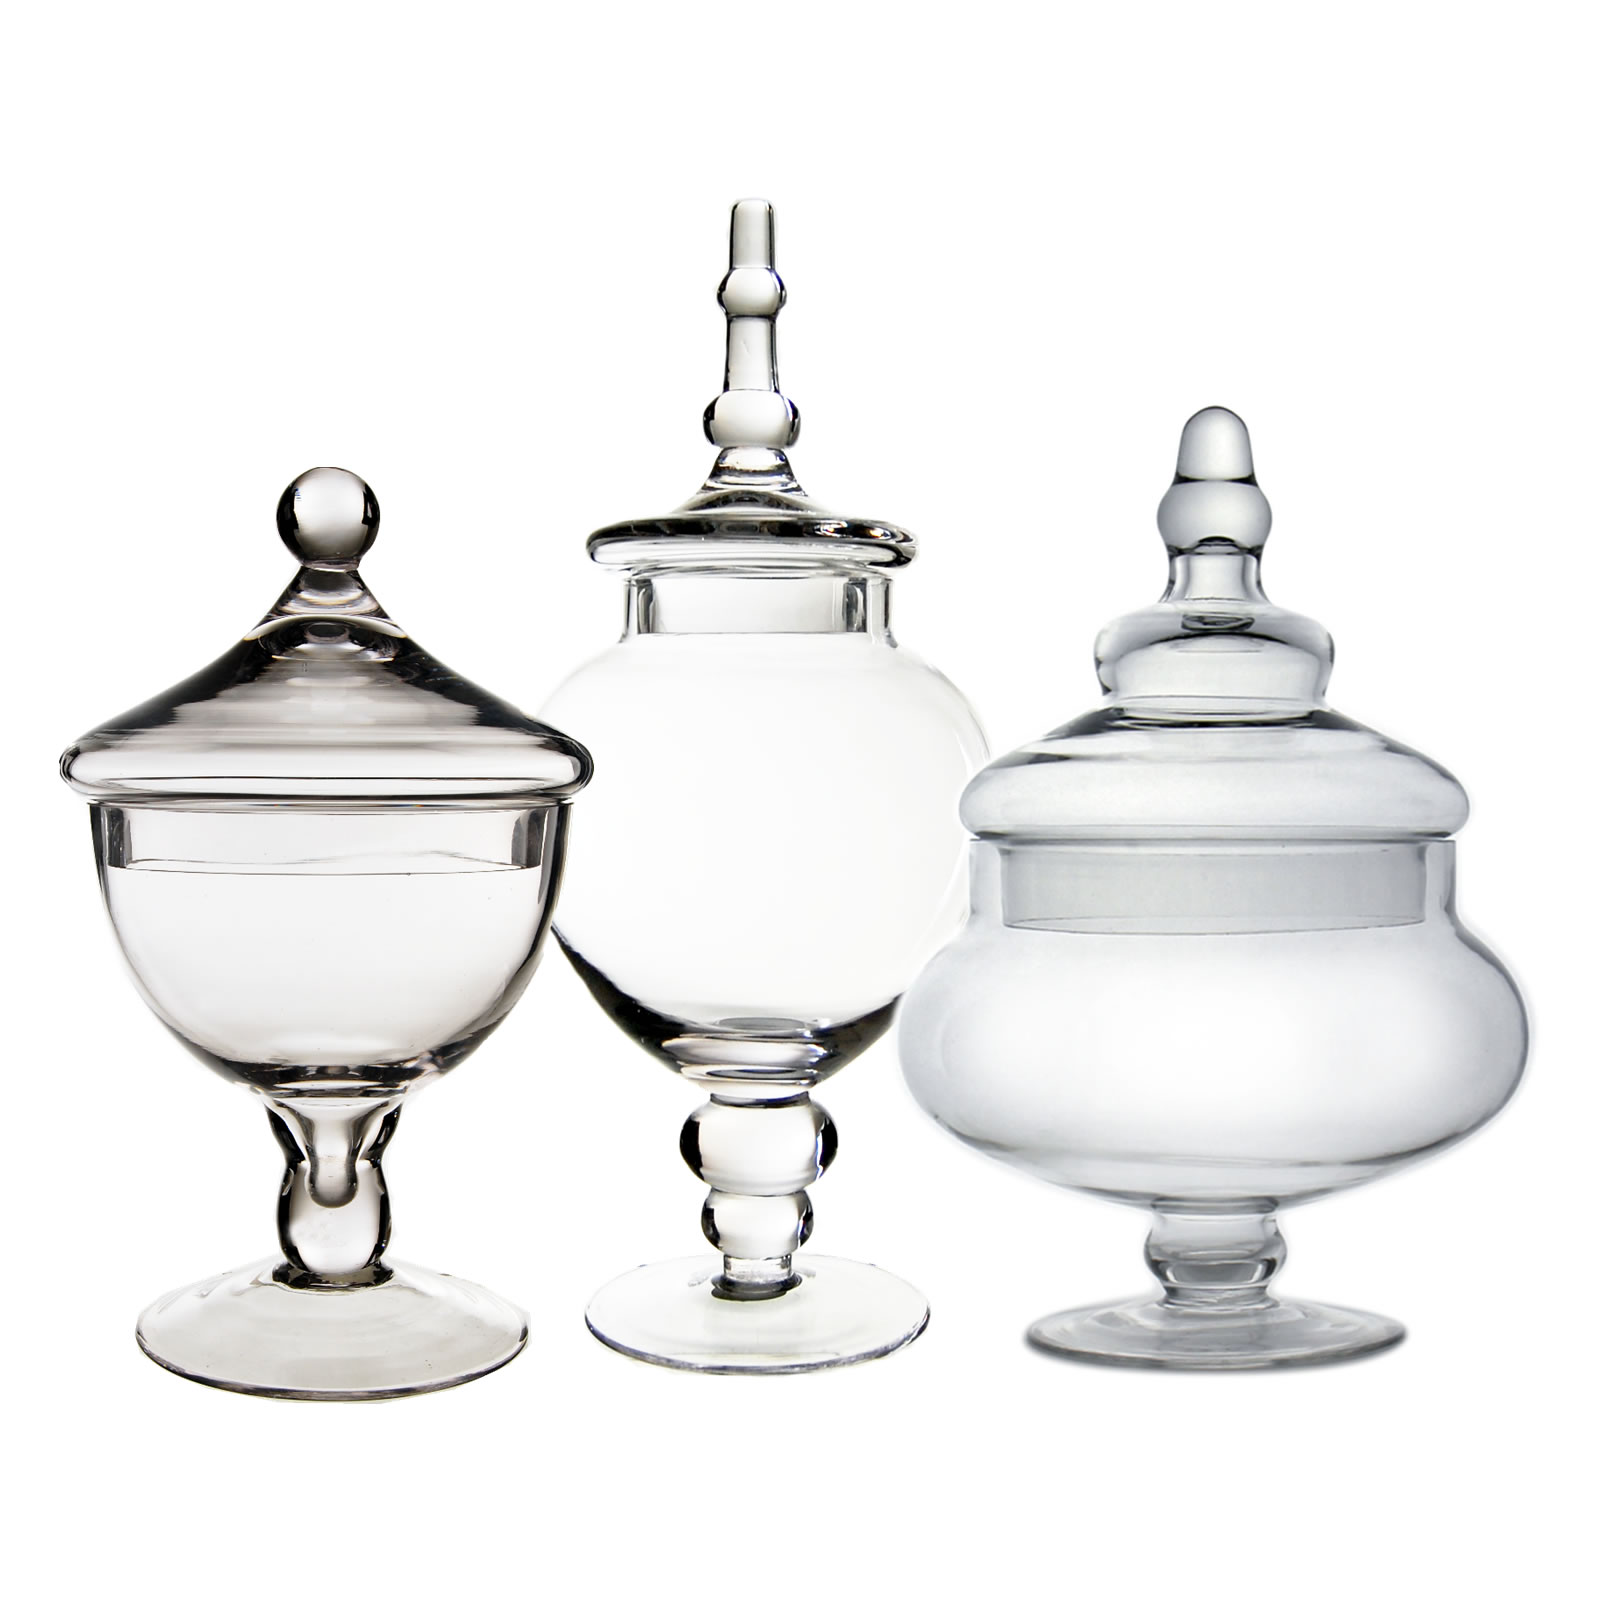 "Glass Apothecary Jars Set of 3, H-10"", 9.5"", 14.75"""